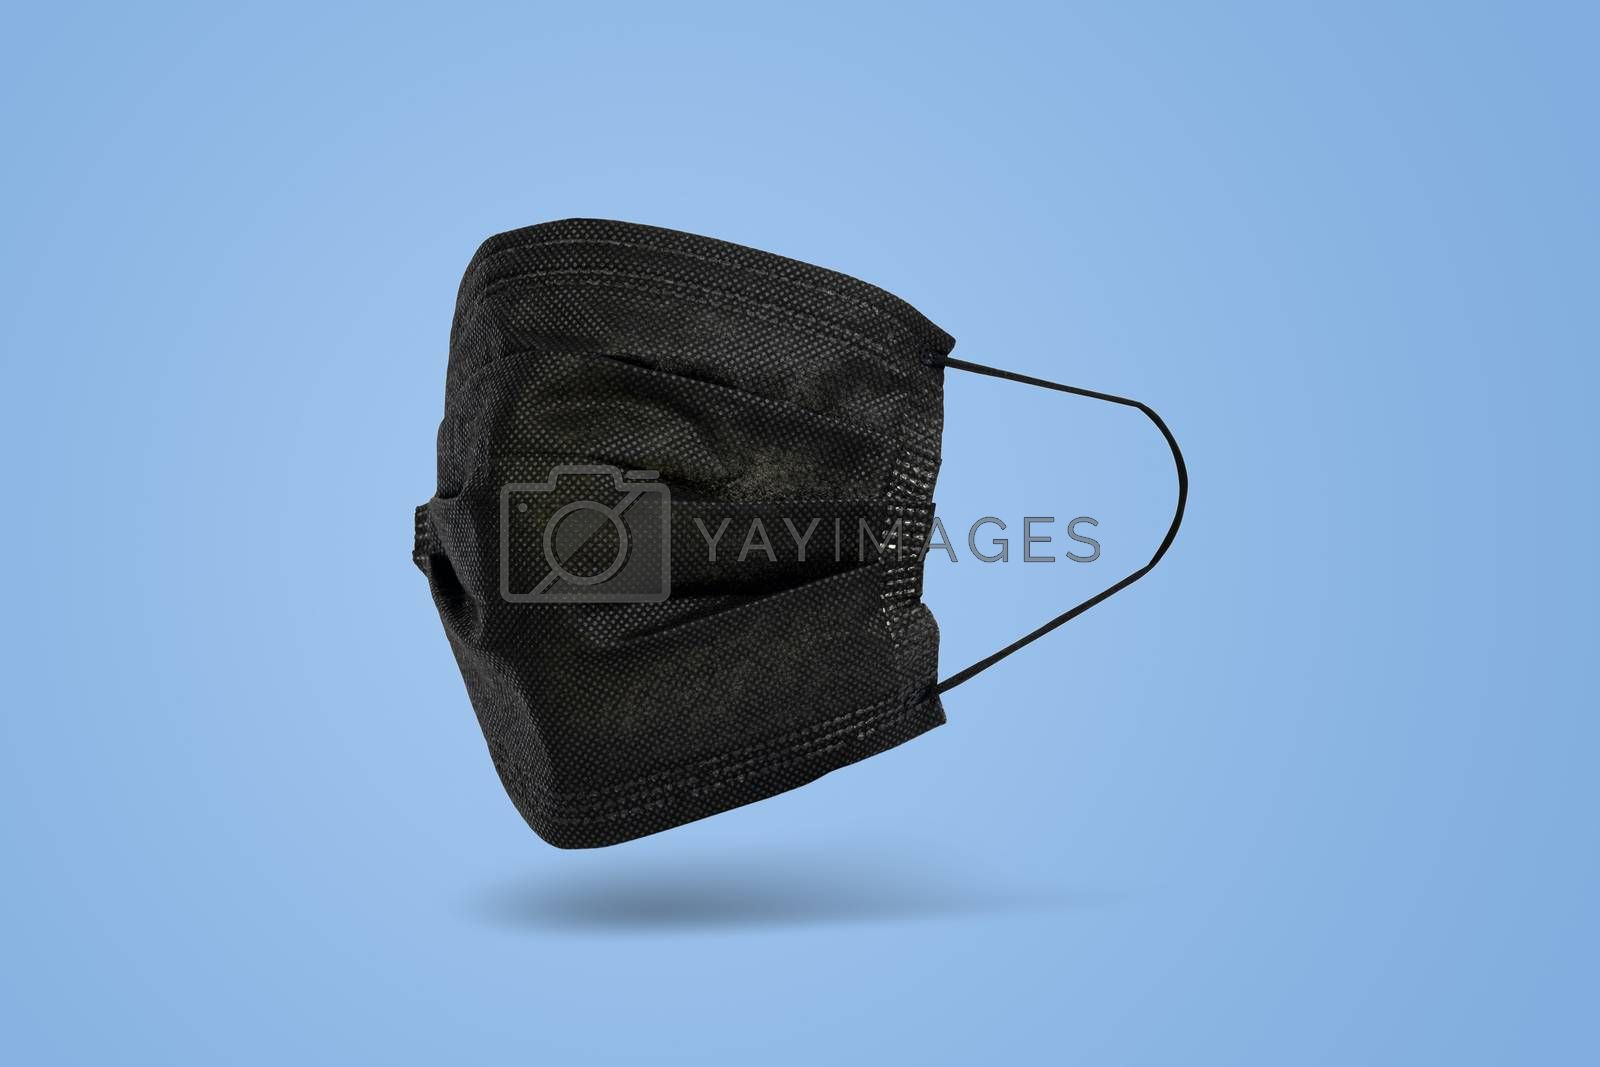 Black sanitary napkin mask for preventing spreading and respiratory infections isolated on pastel color background, Social distancing and stop Coronavirus Covid-19 concept.